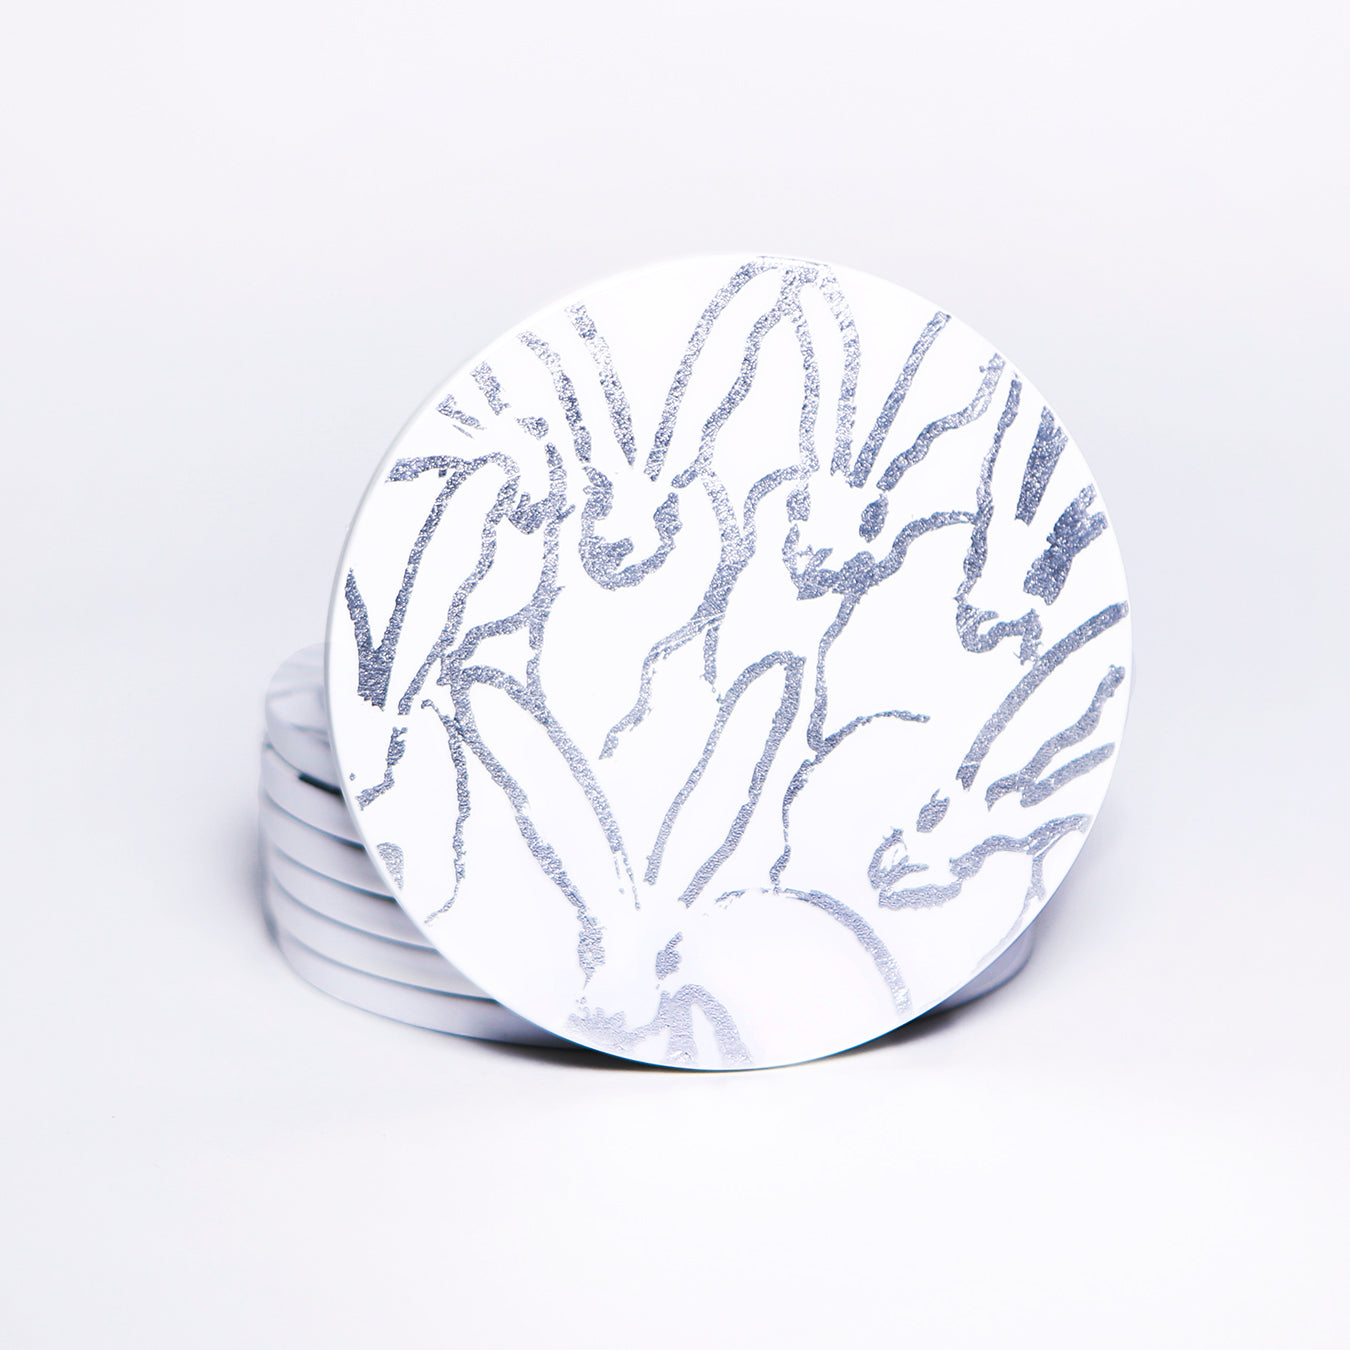 Silver and White Rabbit Run Lacquered Coasters